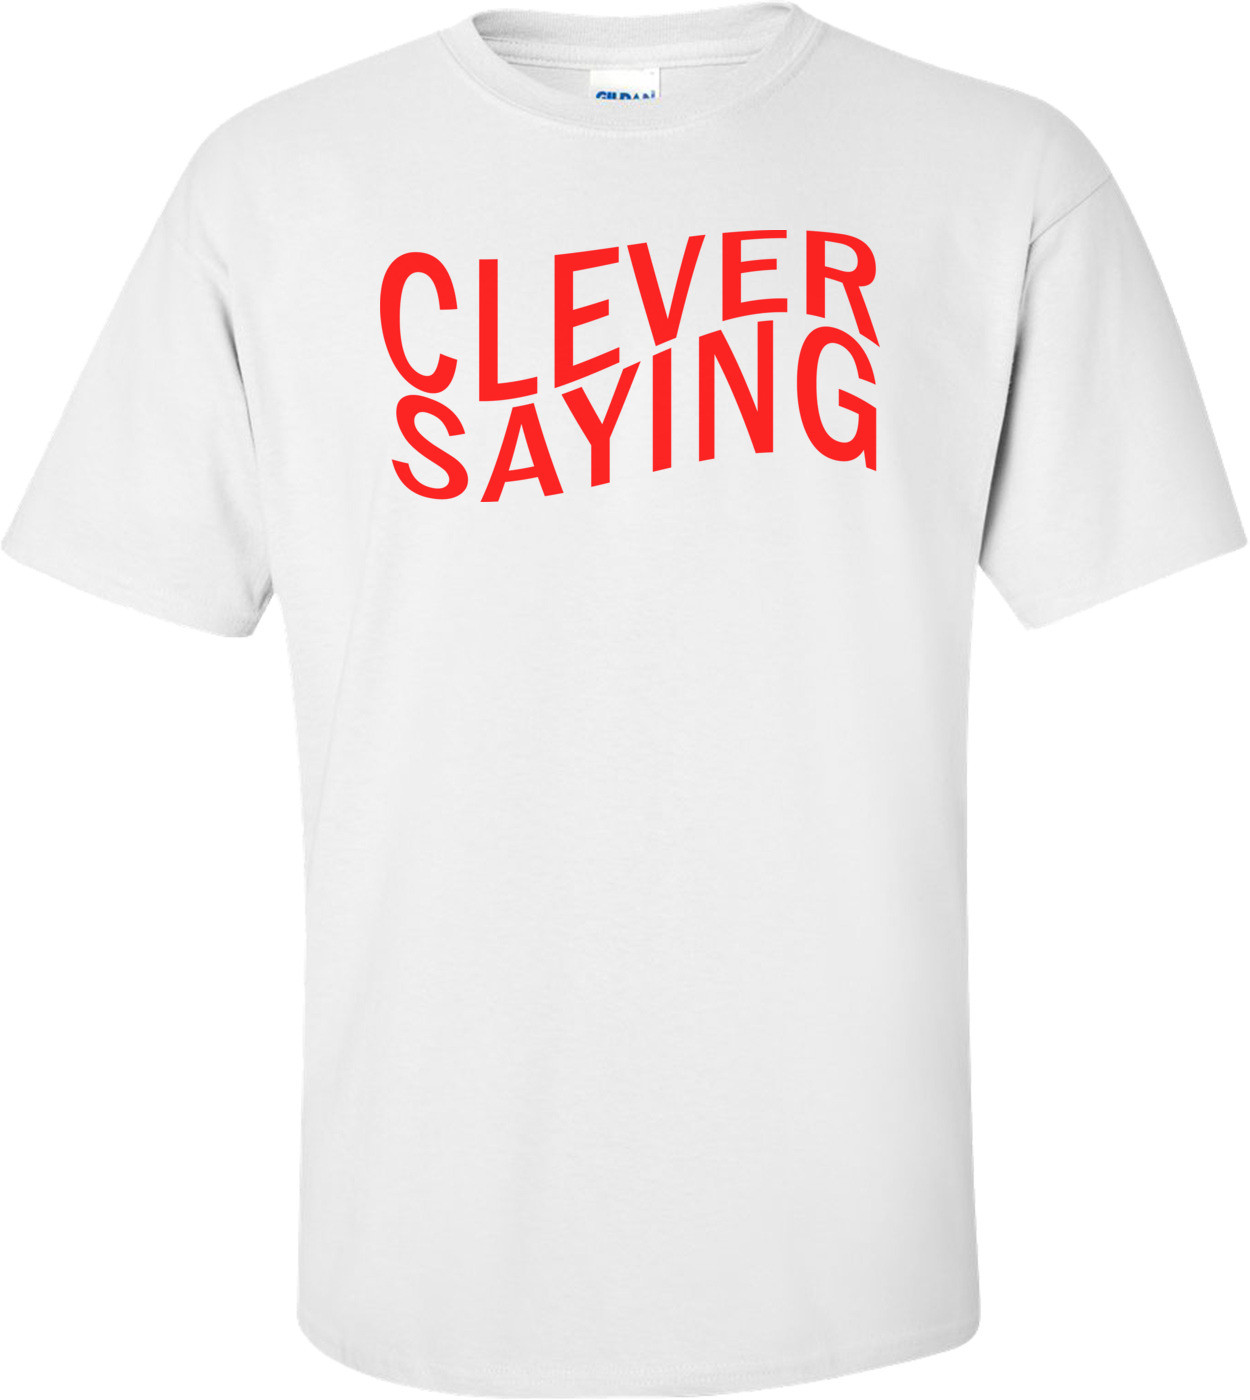 Clever Saying T-shirt